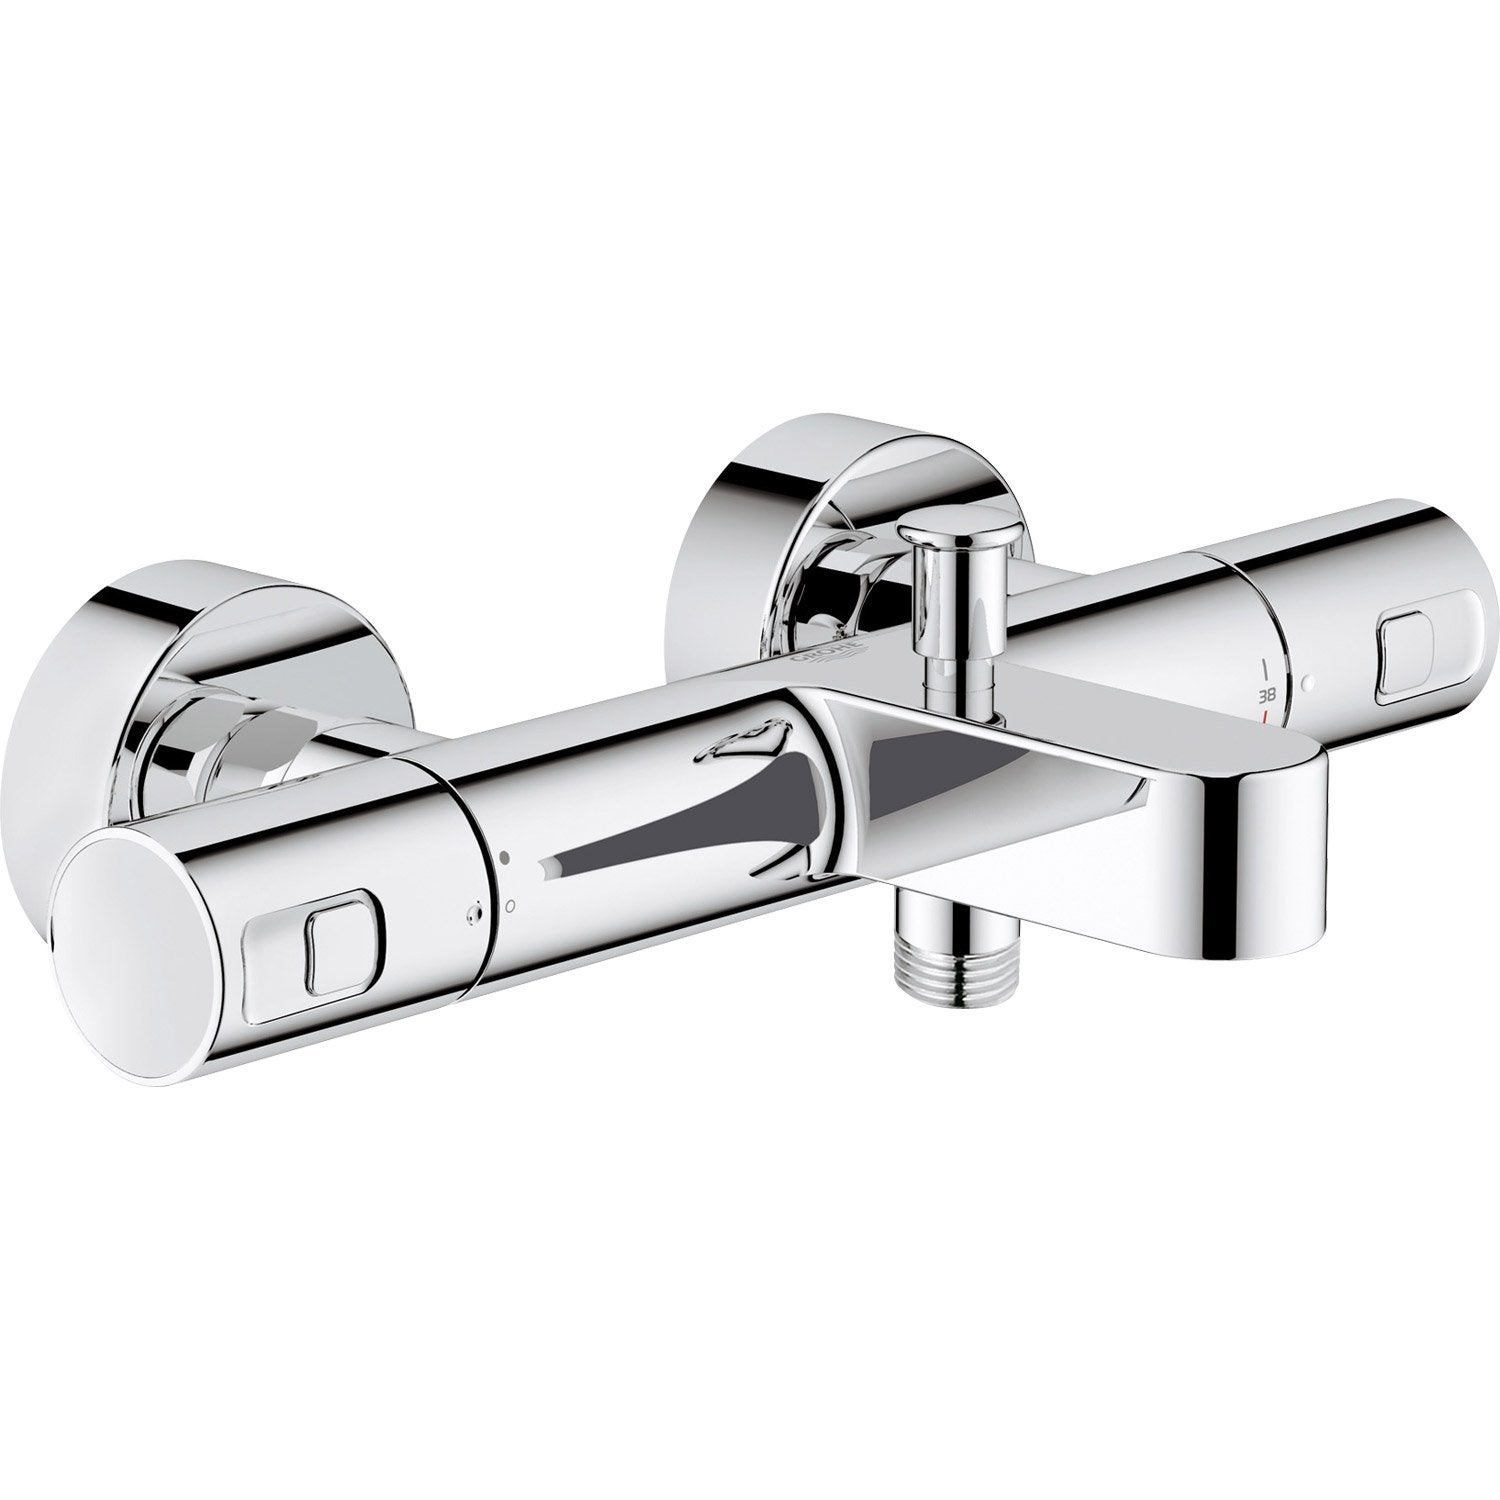 Colonne douche thermostatique brico depot - Mitigeur bain douche thermostatique grohe ...